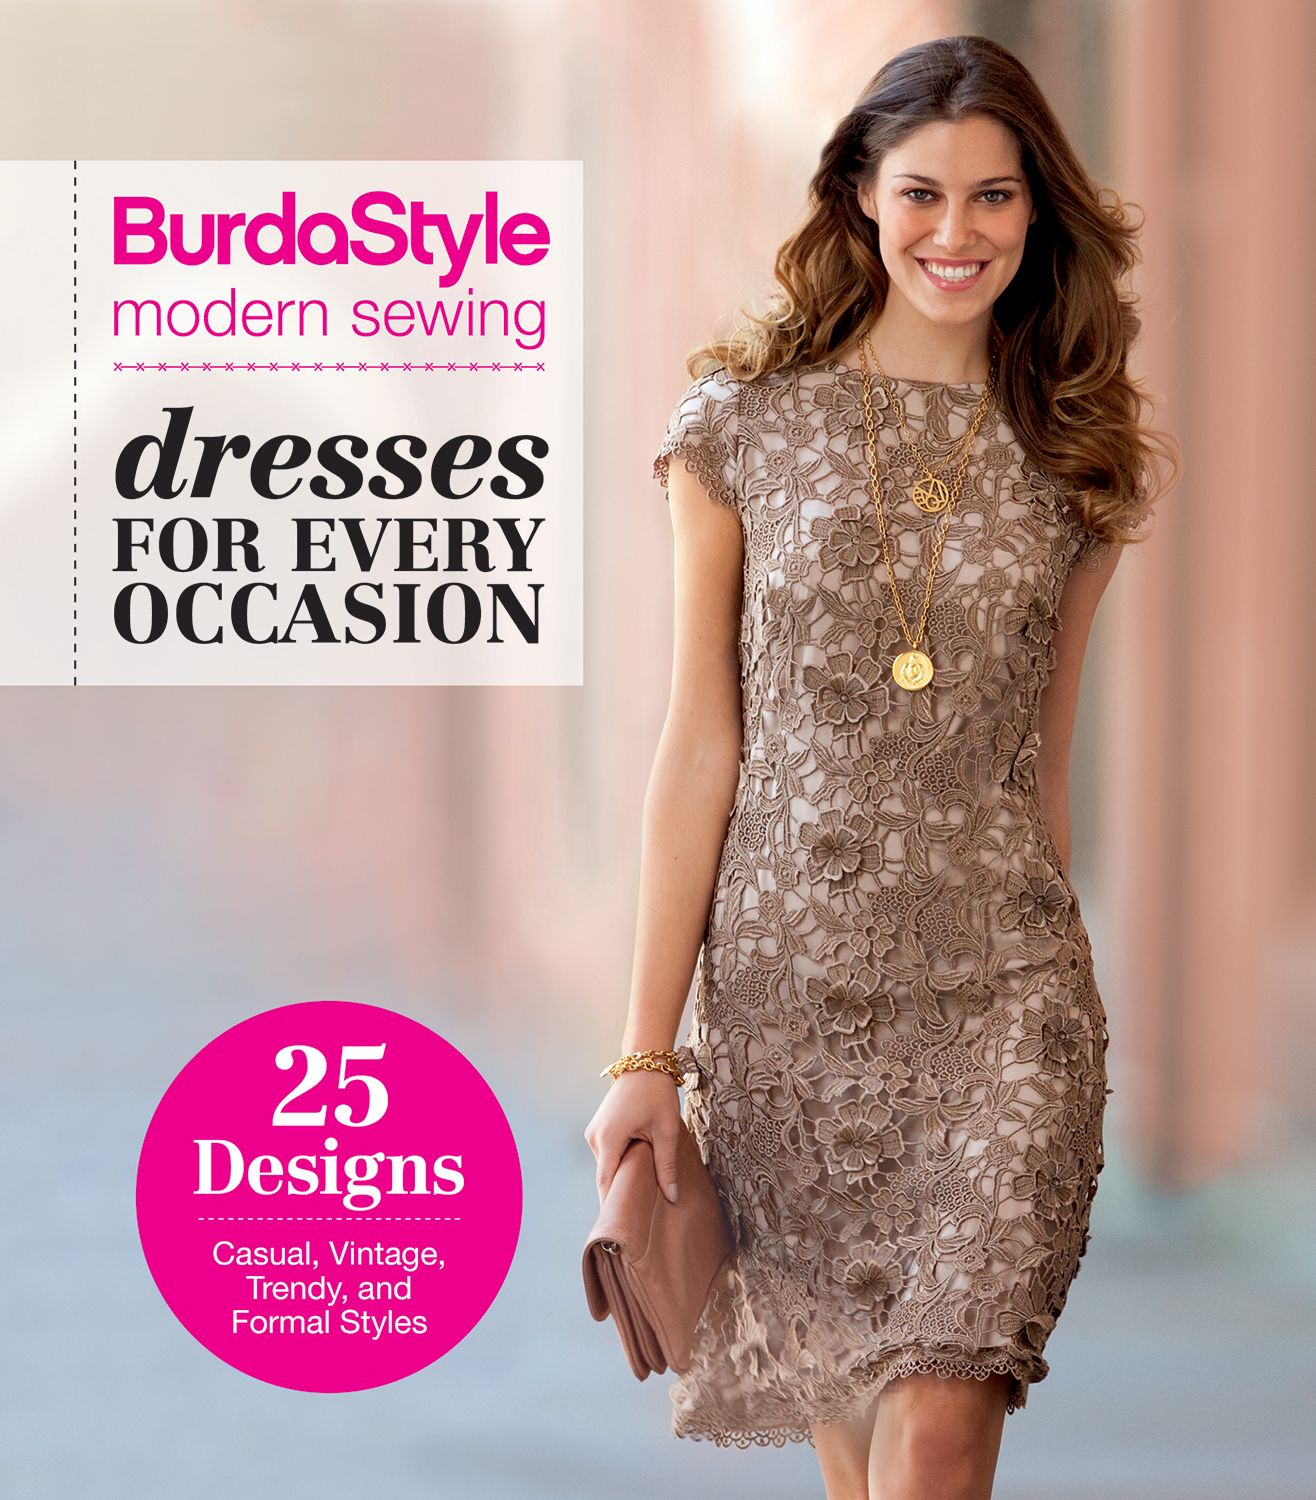 Modern dress casual - Sew Well Burdastyle Dresses For Every Occasion